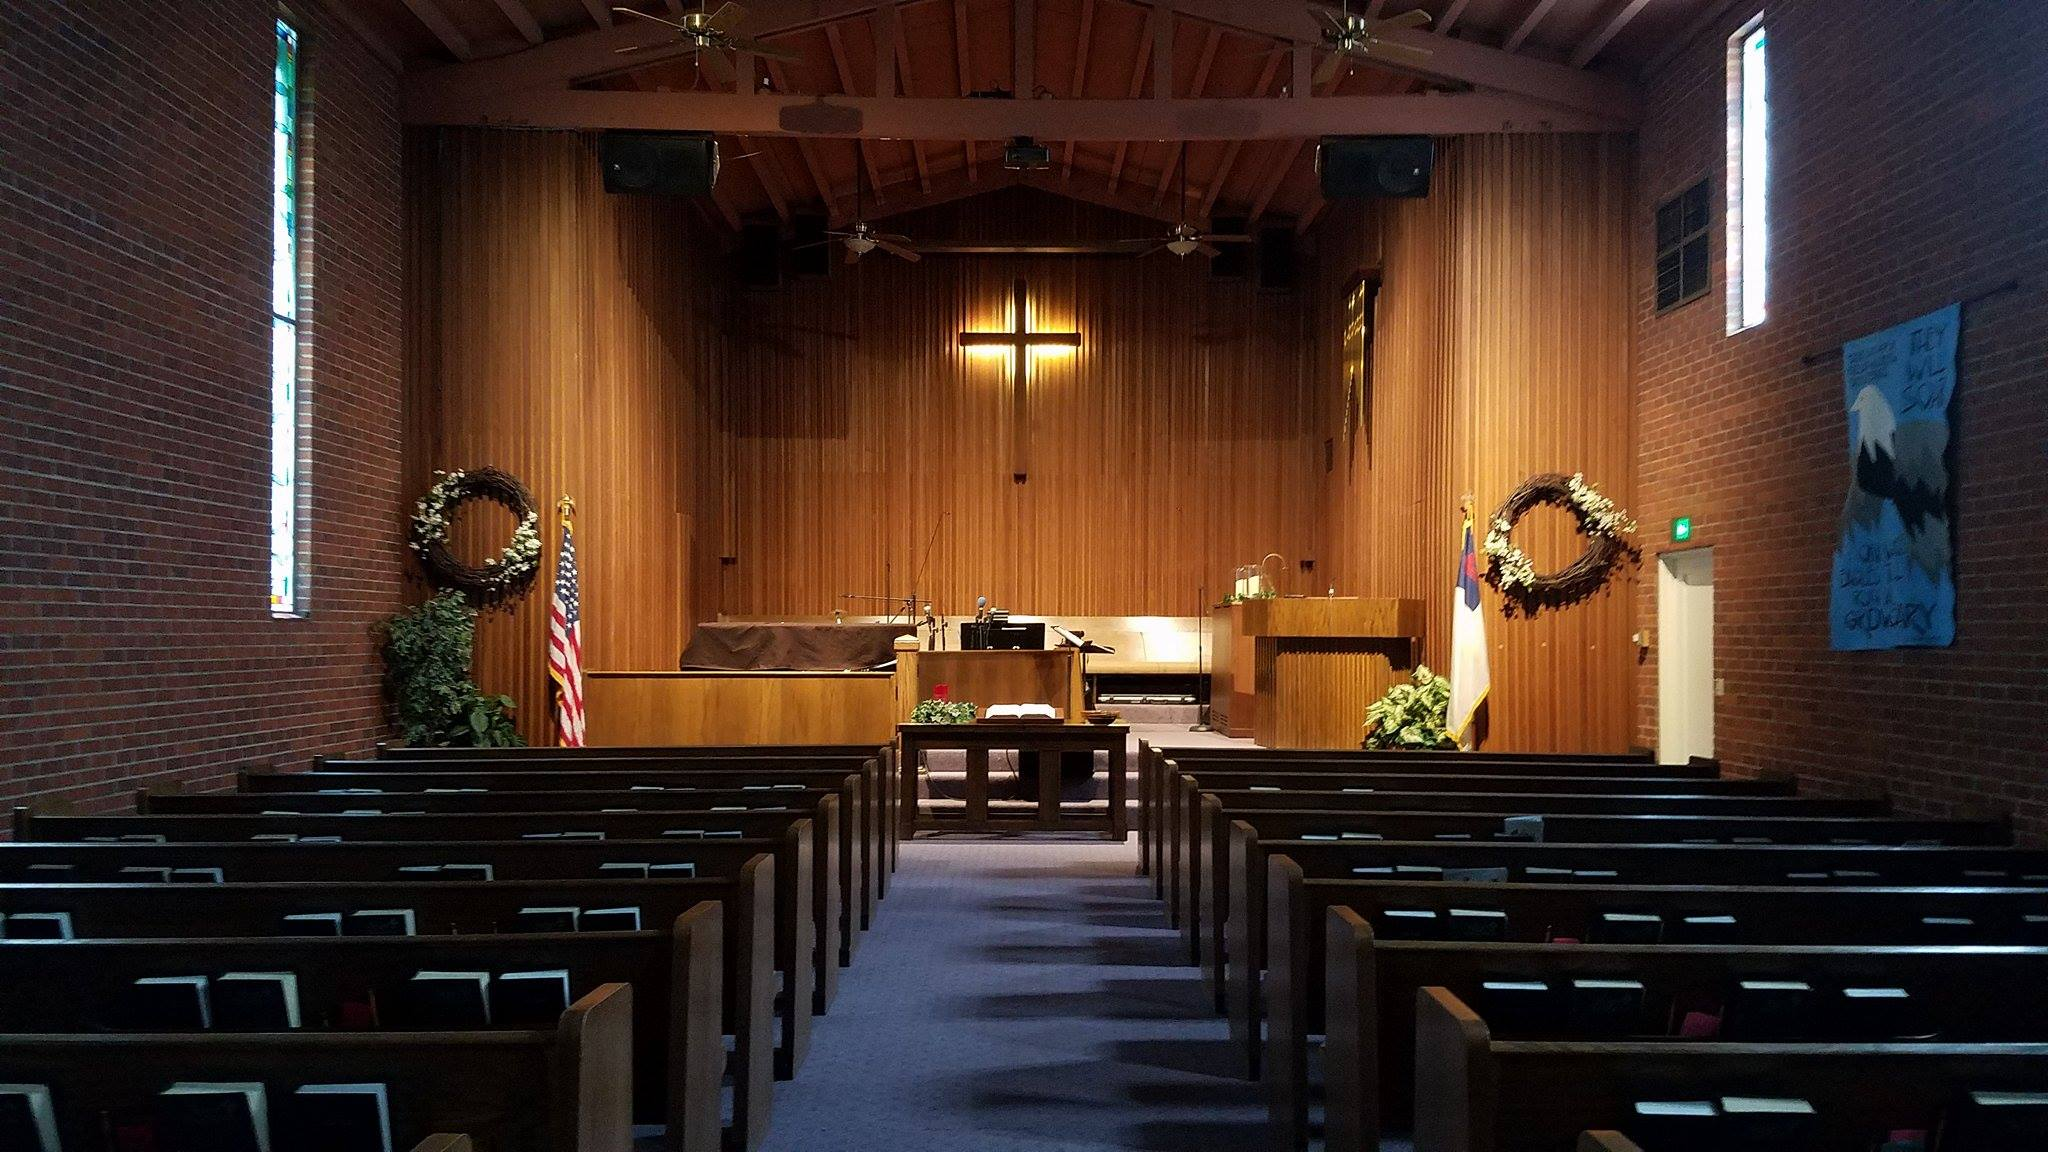 WE HOPE TO SEE YOU AT OUR NEXT SUNDAY WORSHIP SERVICE! - FIND US ON FACEBOOK